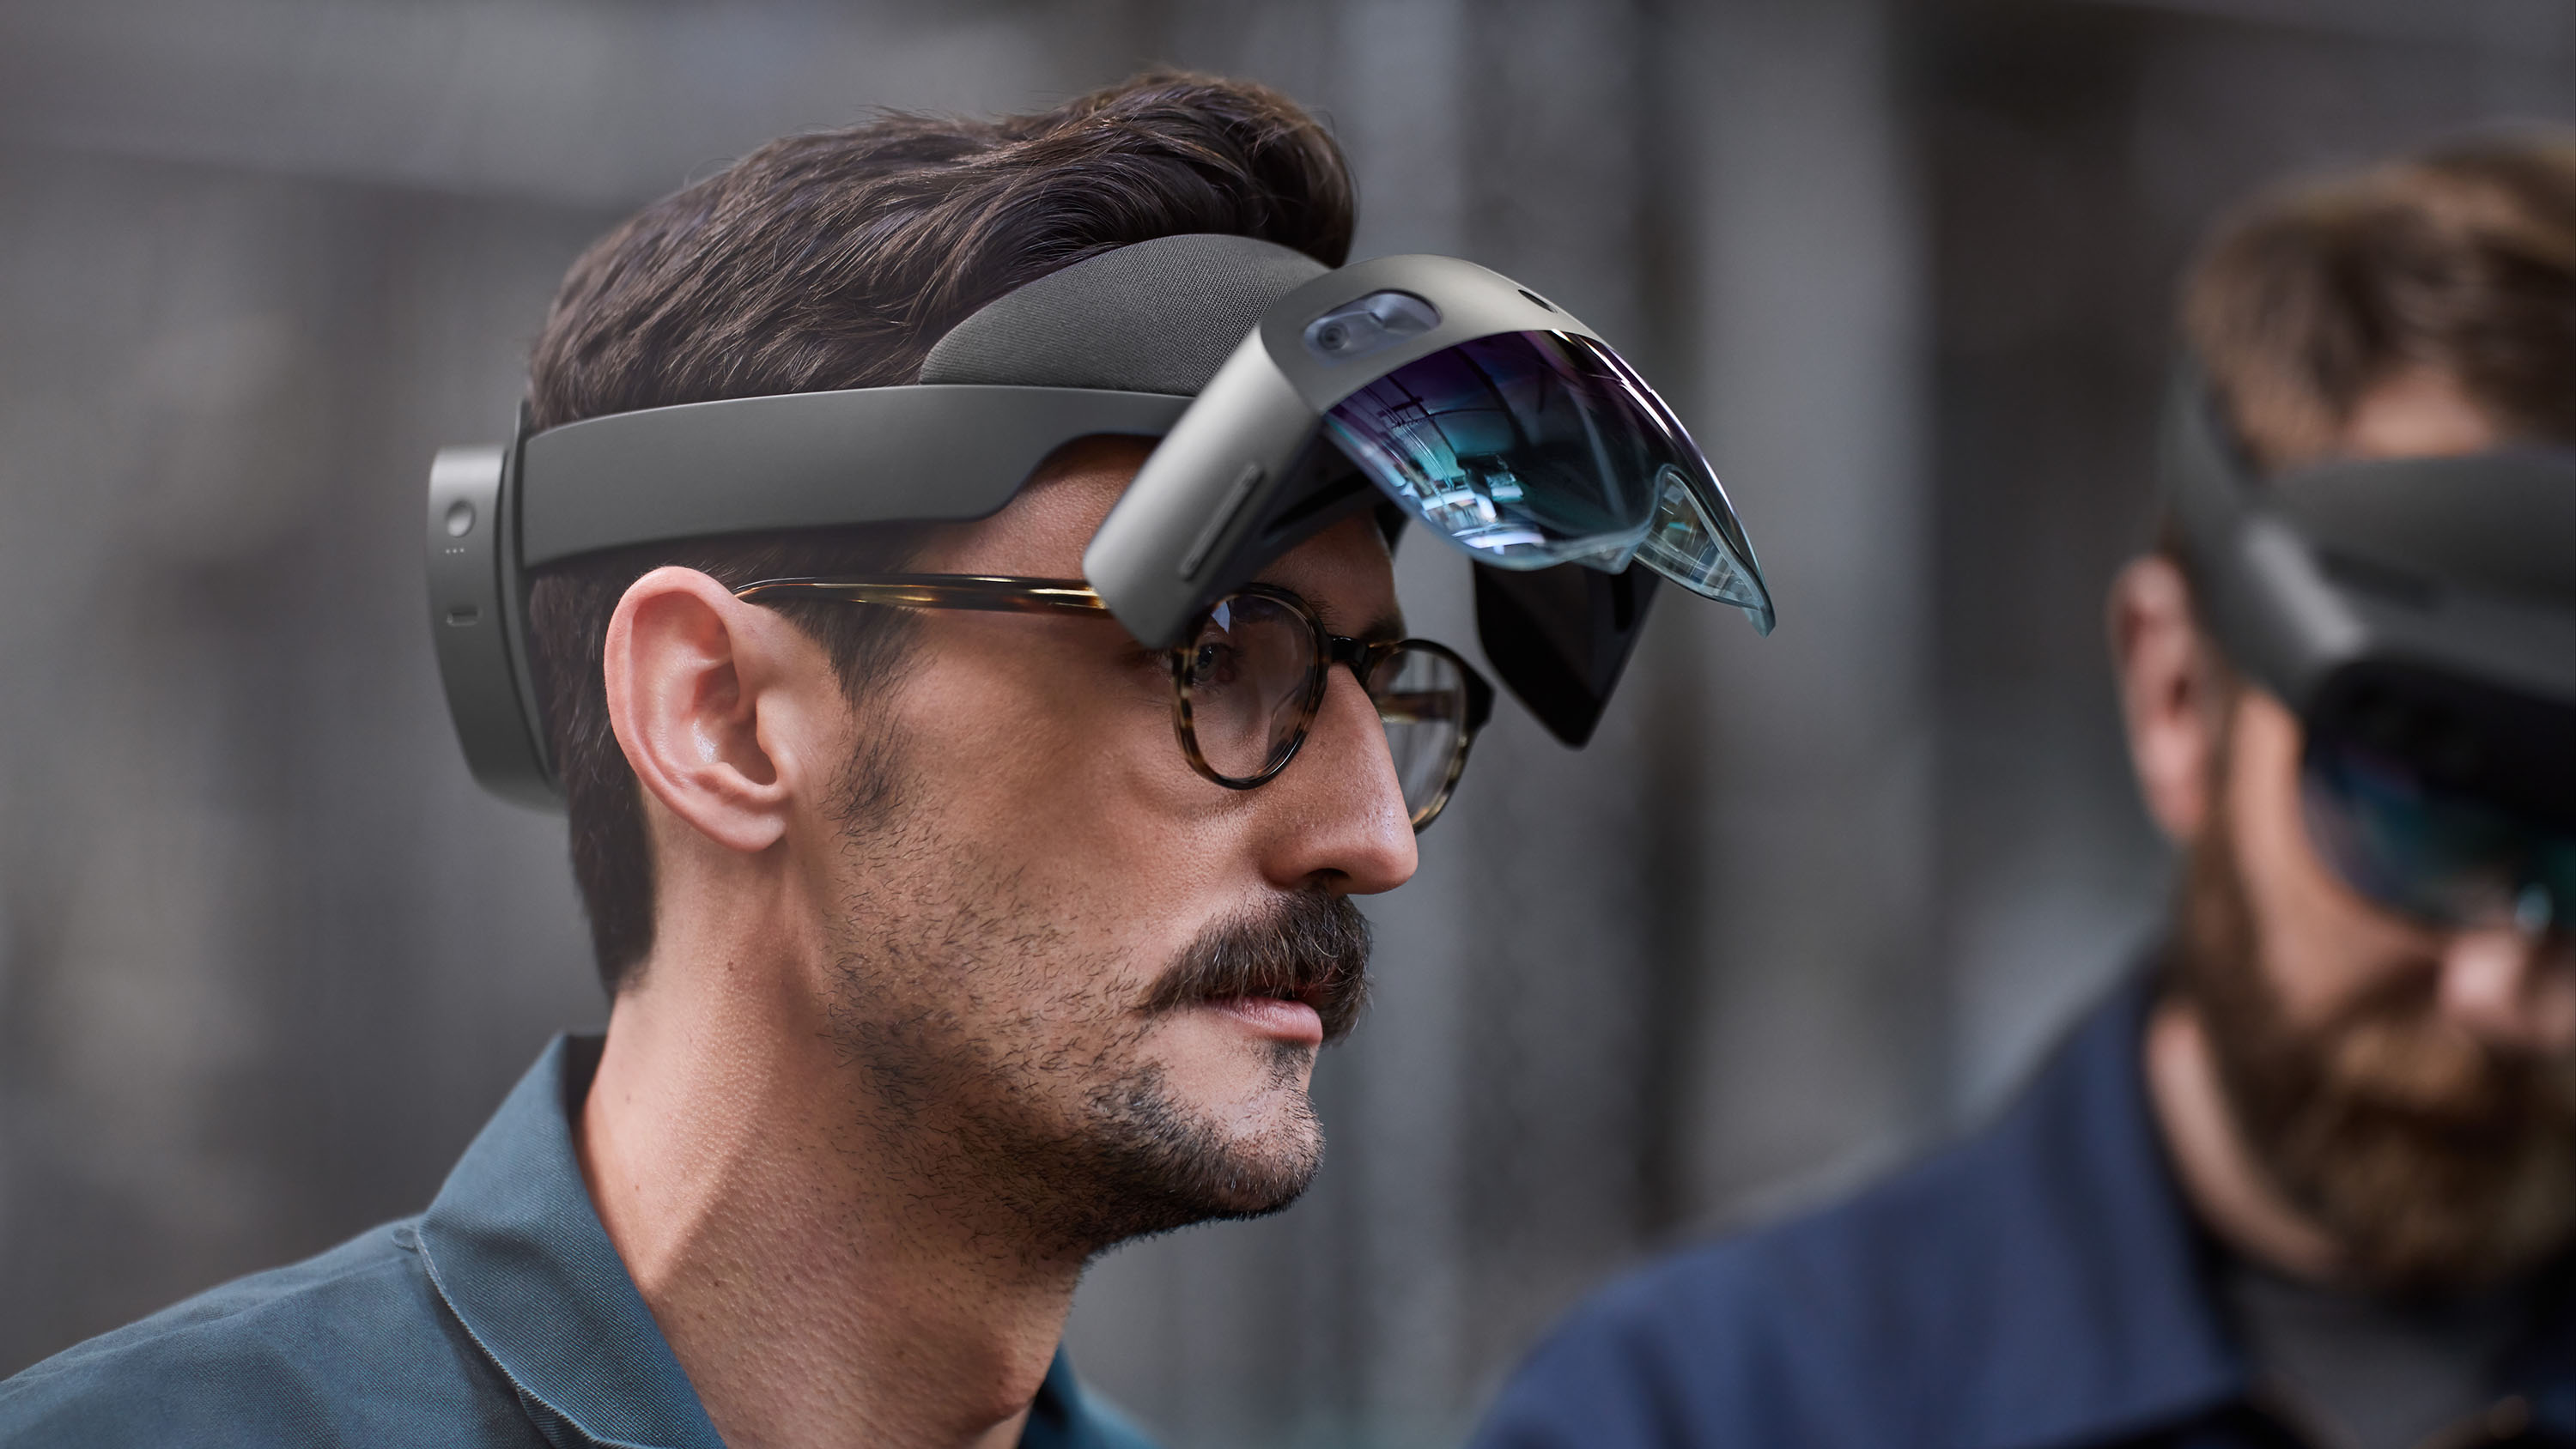 1918f1e771c Hands on with Microsoft s new augmented reality headset - CNN Video